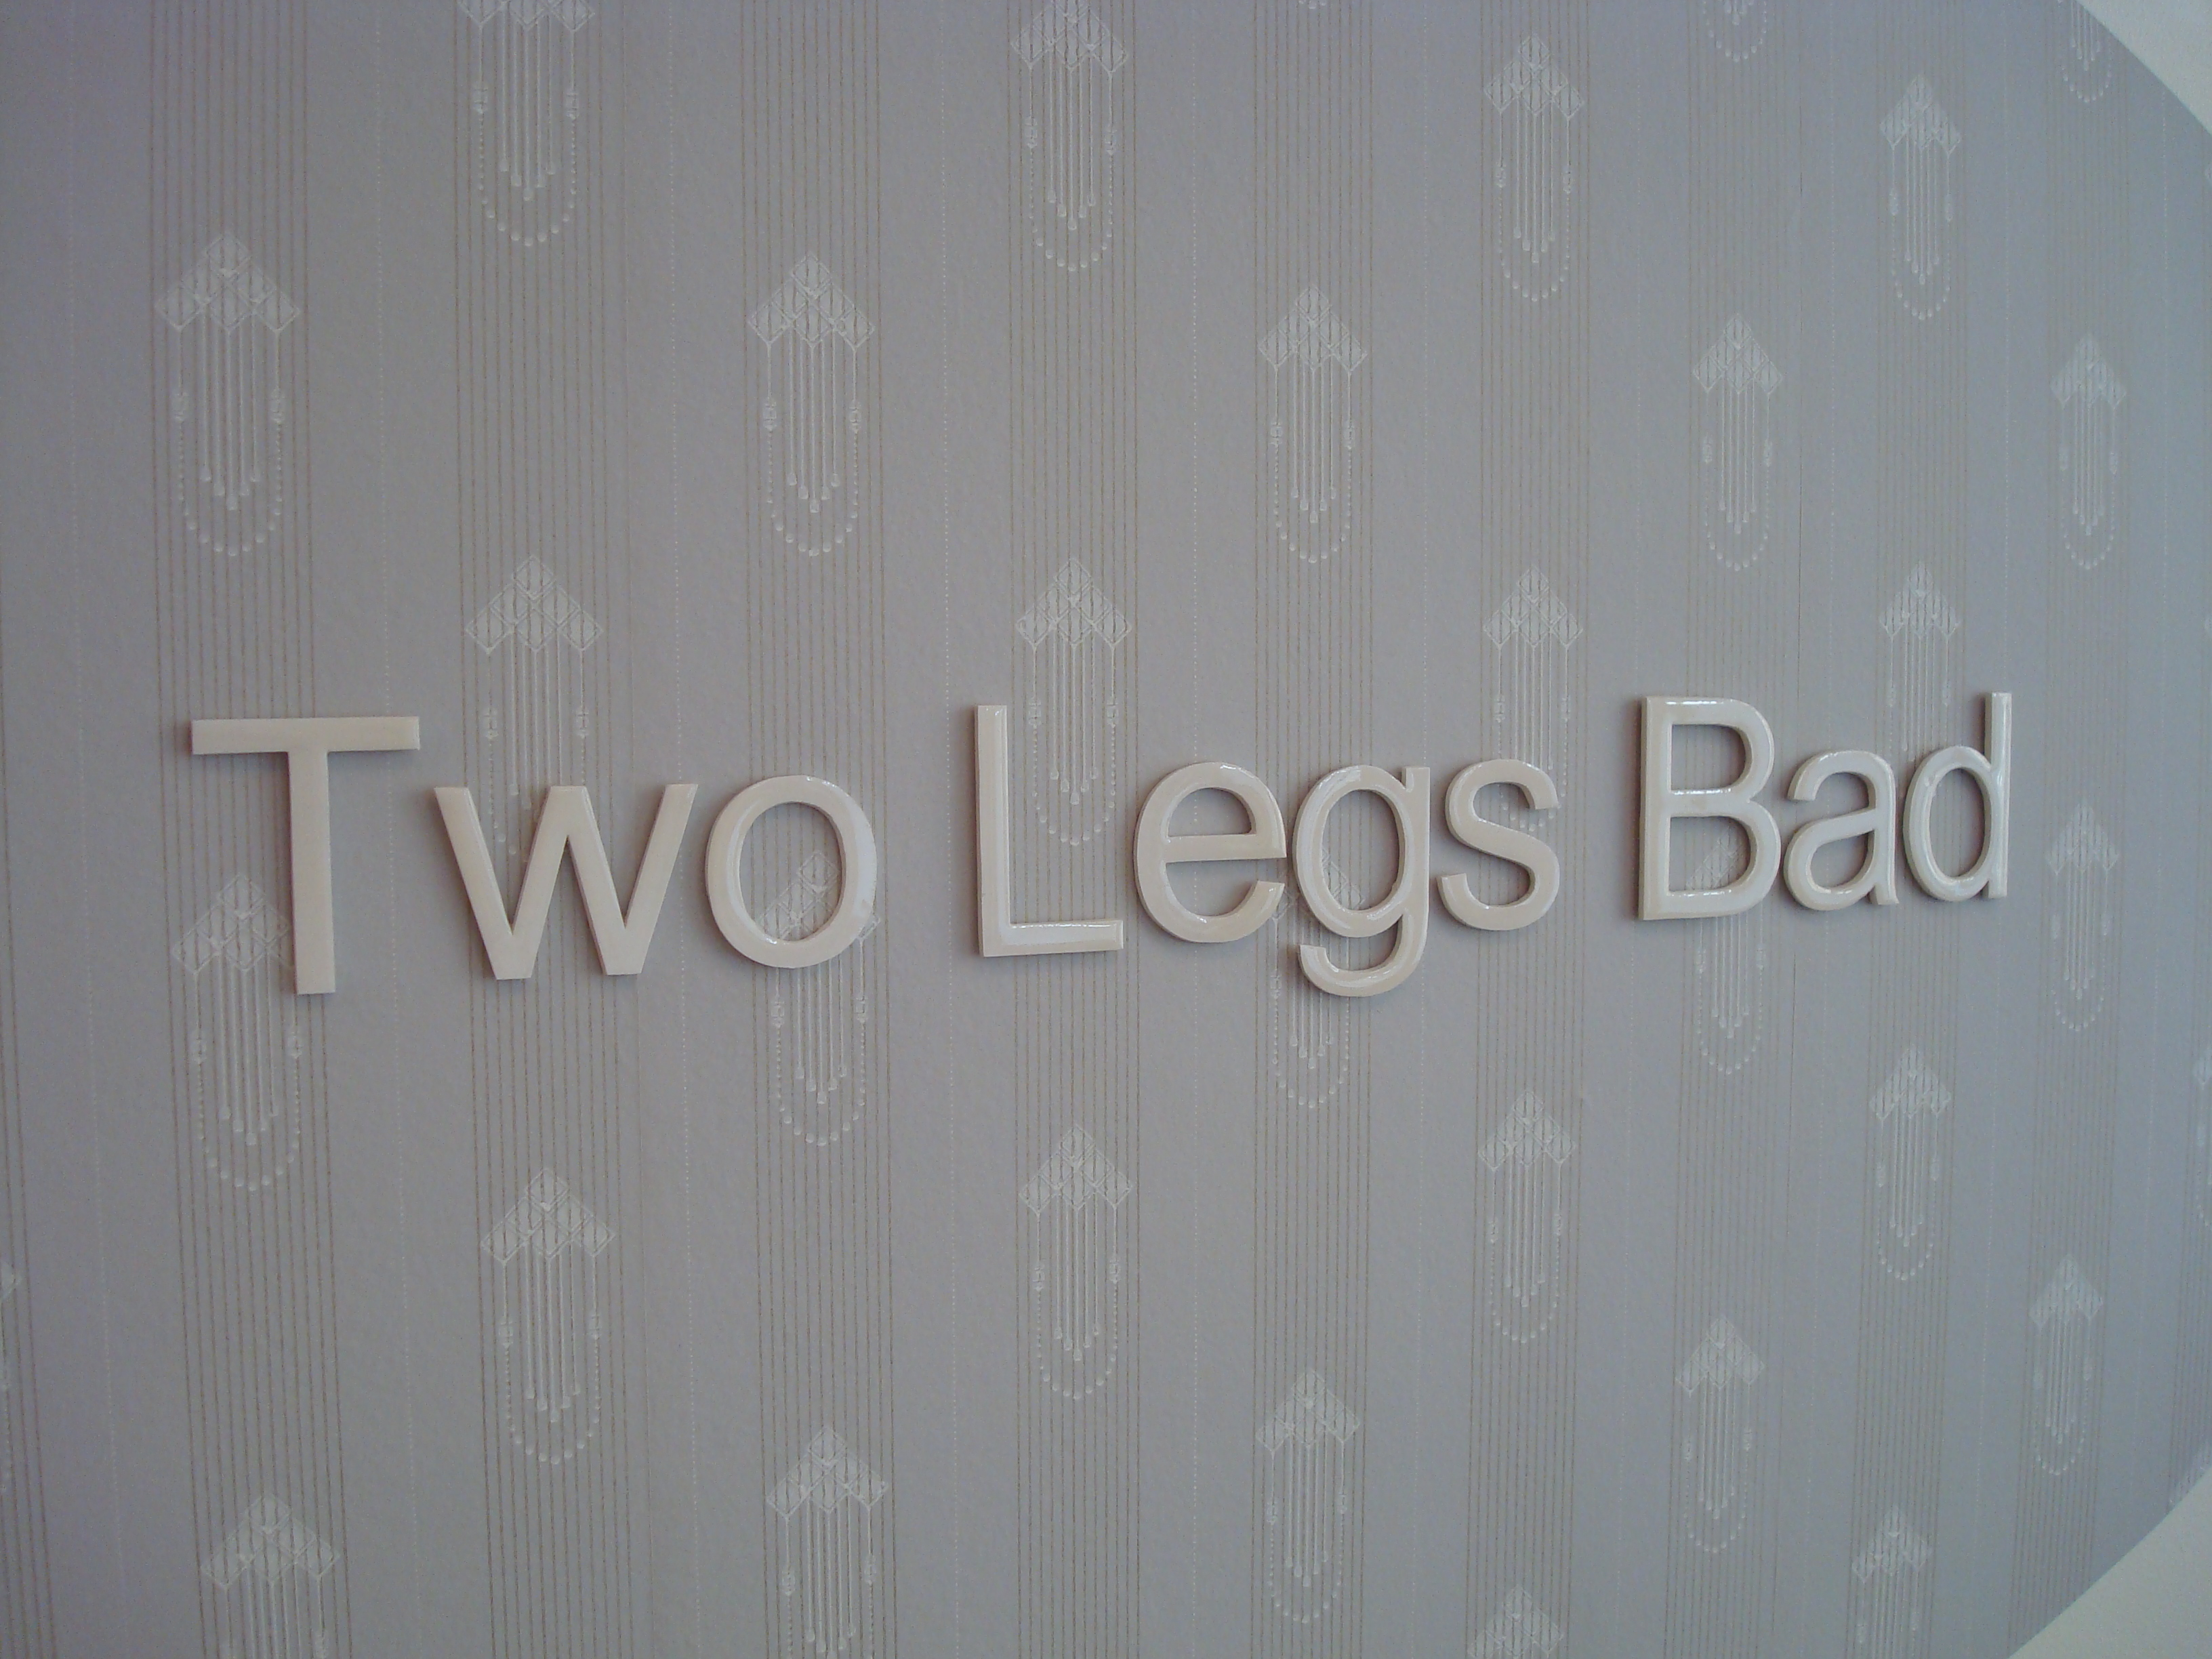 Two Legs Bad